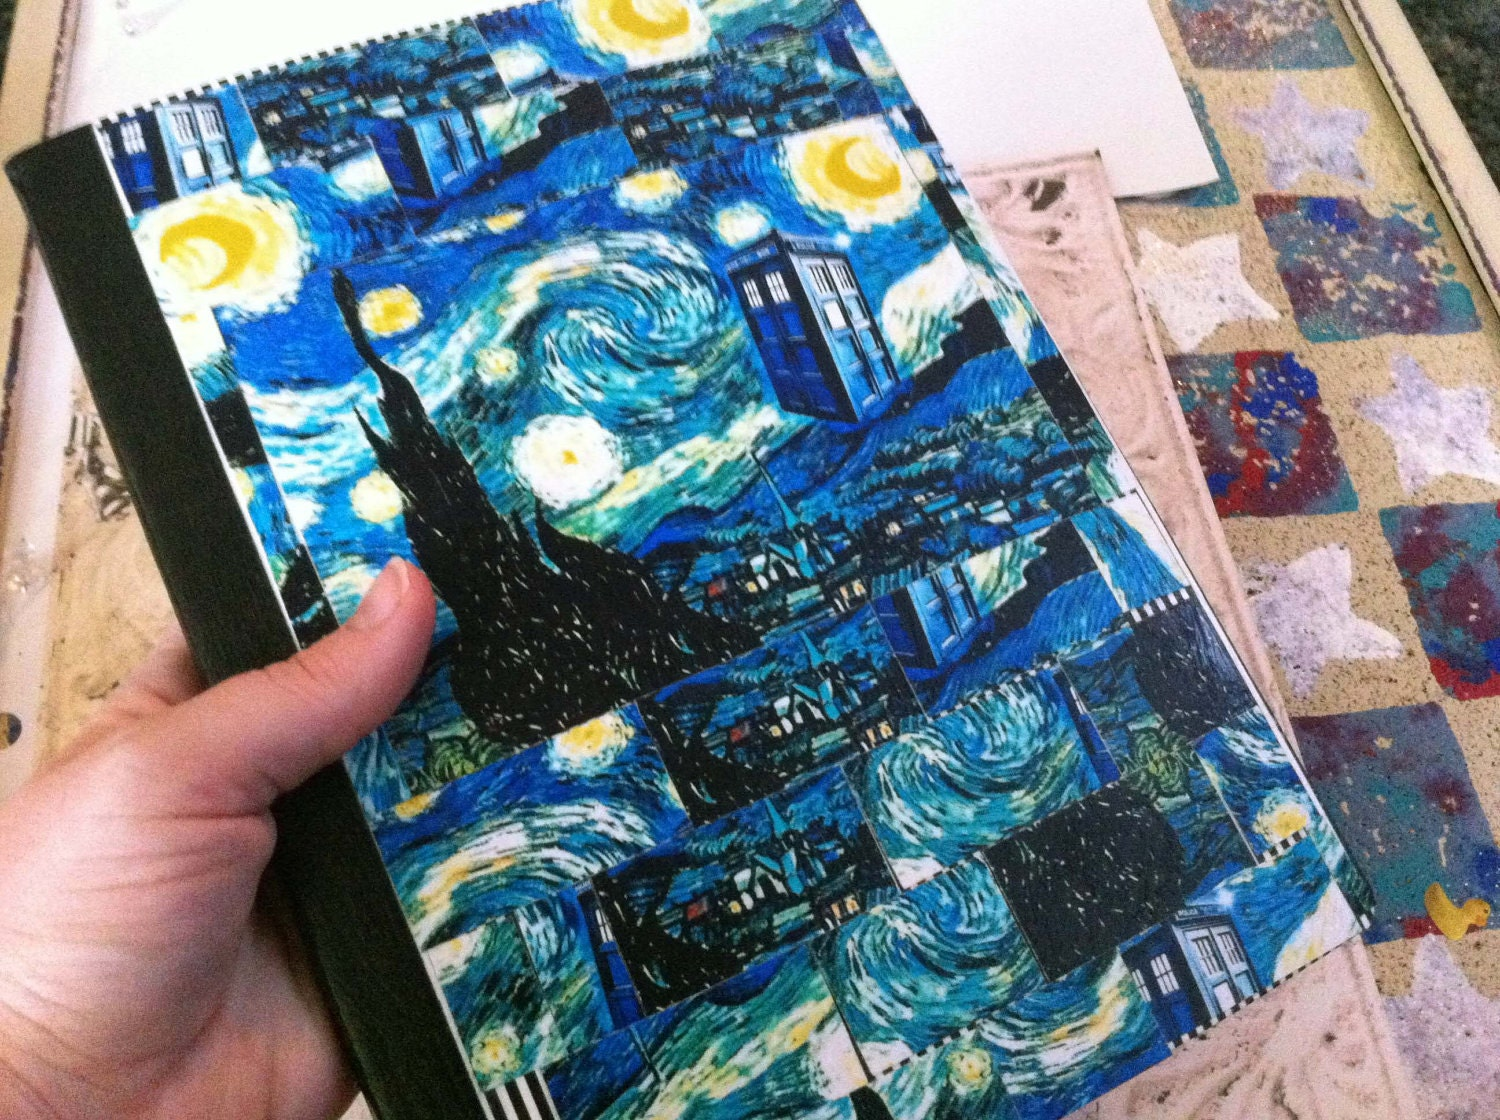 Van Gogh Tardis http://www.etsy.com/listing/95237365/doctor-who-inspired-tardis-starry-night